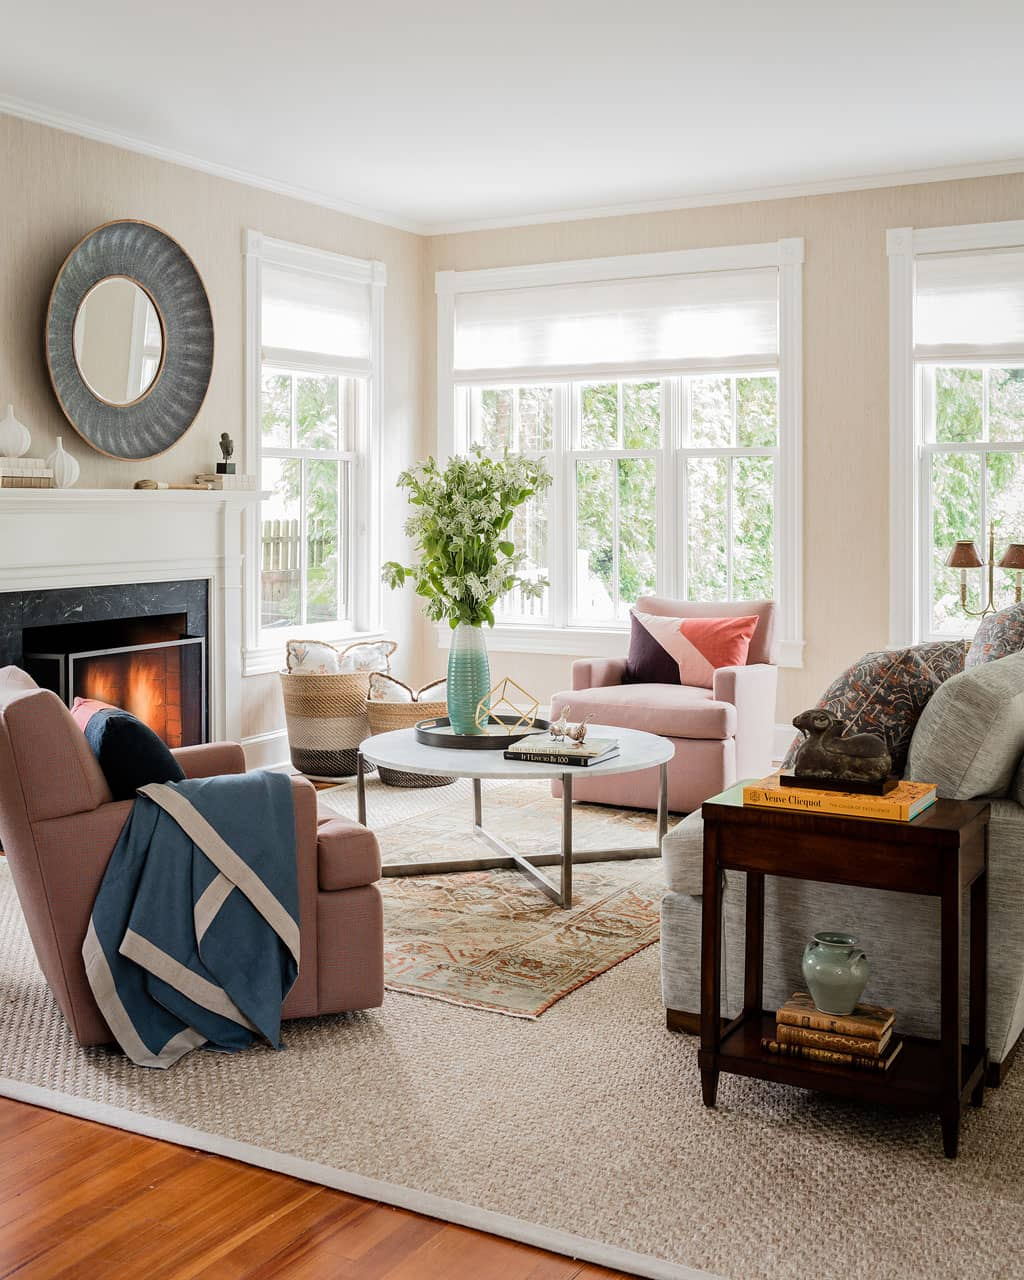 Concord Chic Living Room View Featuring Wood Burning Fireplace And Upholstered Furniture Interior Design